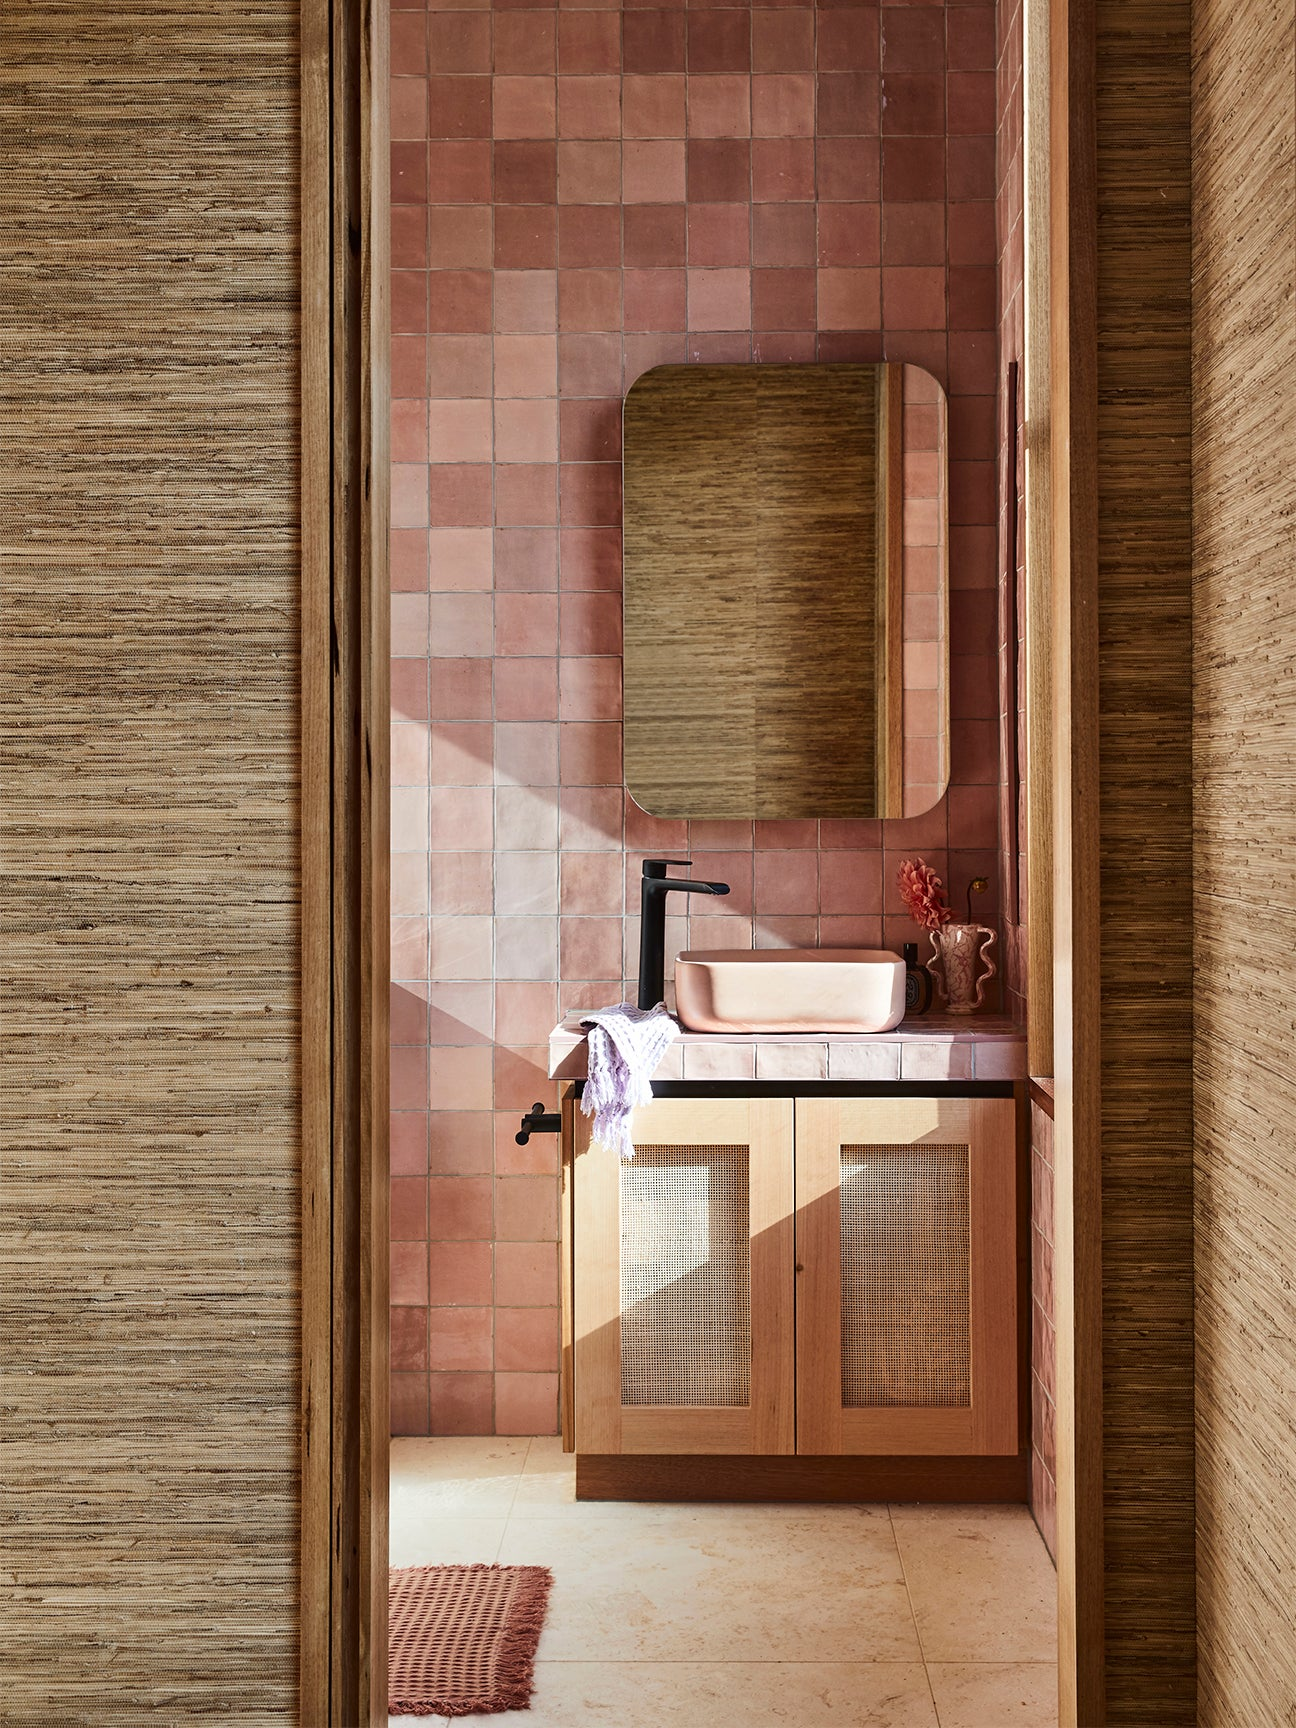 Bathroom with pink tile